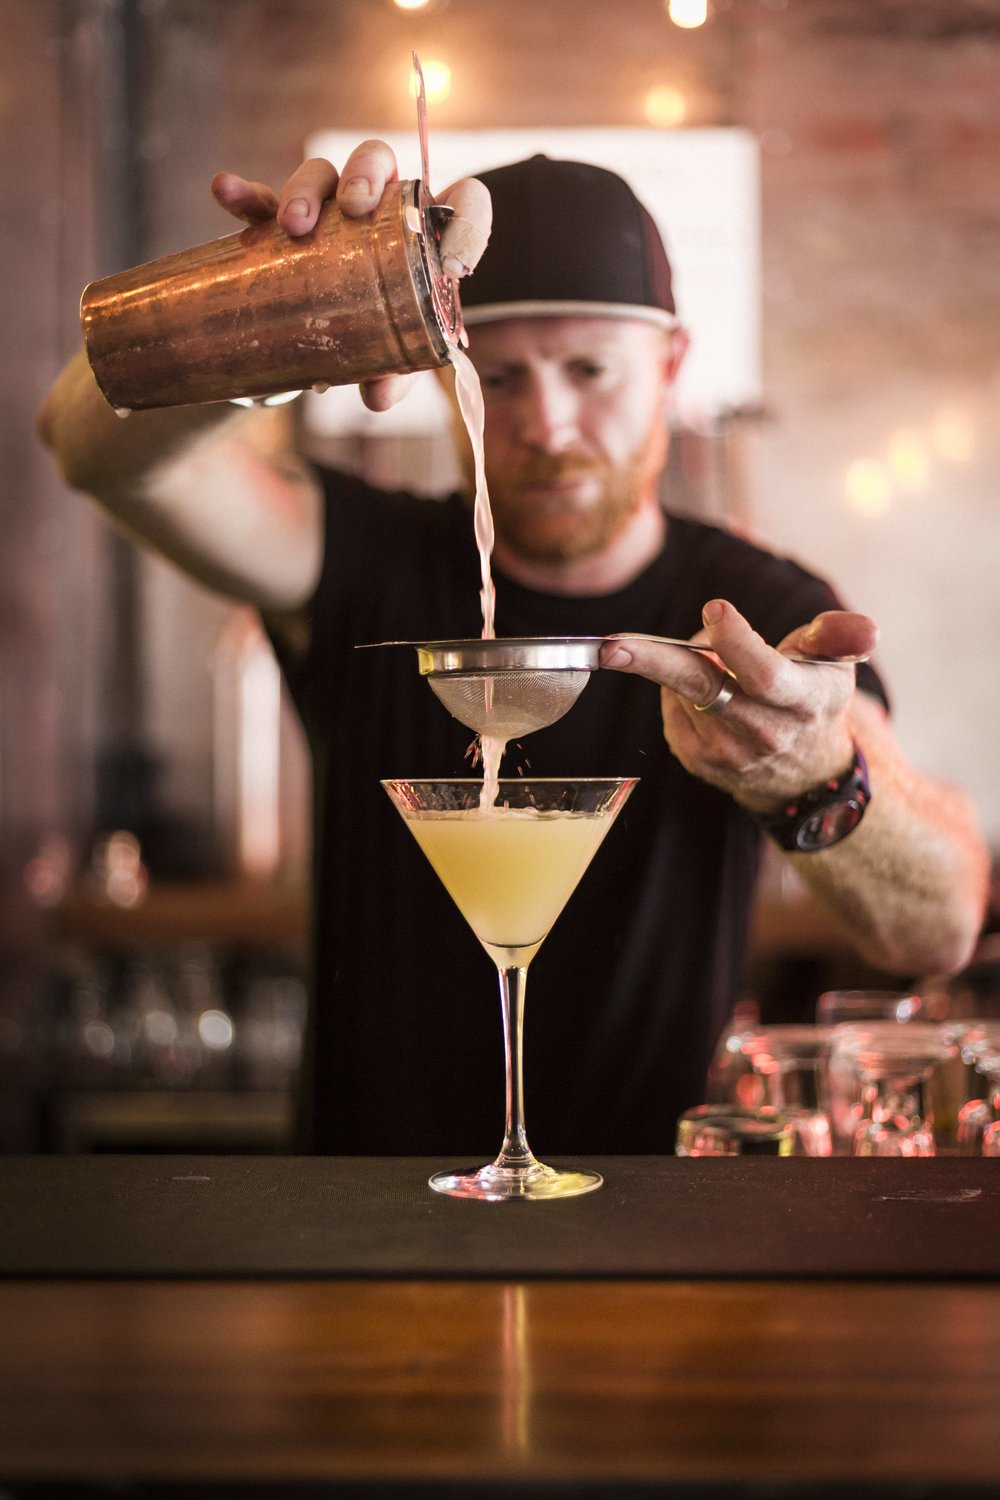 Rory preparing an Apple Martini. Image by Michael le Grange.